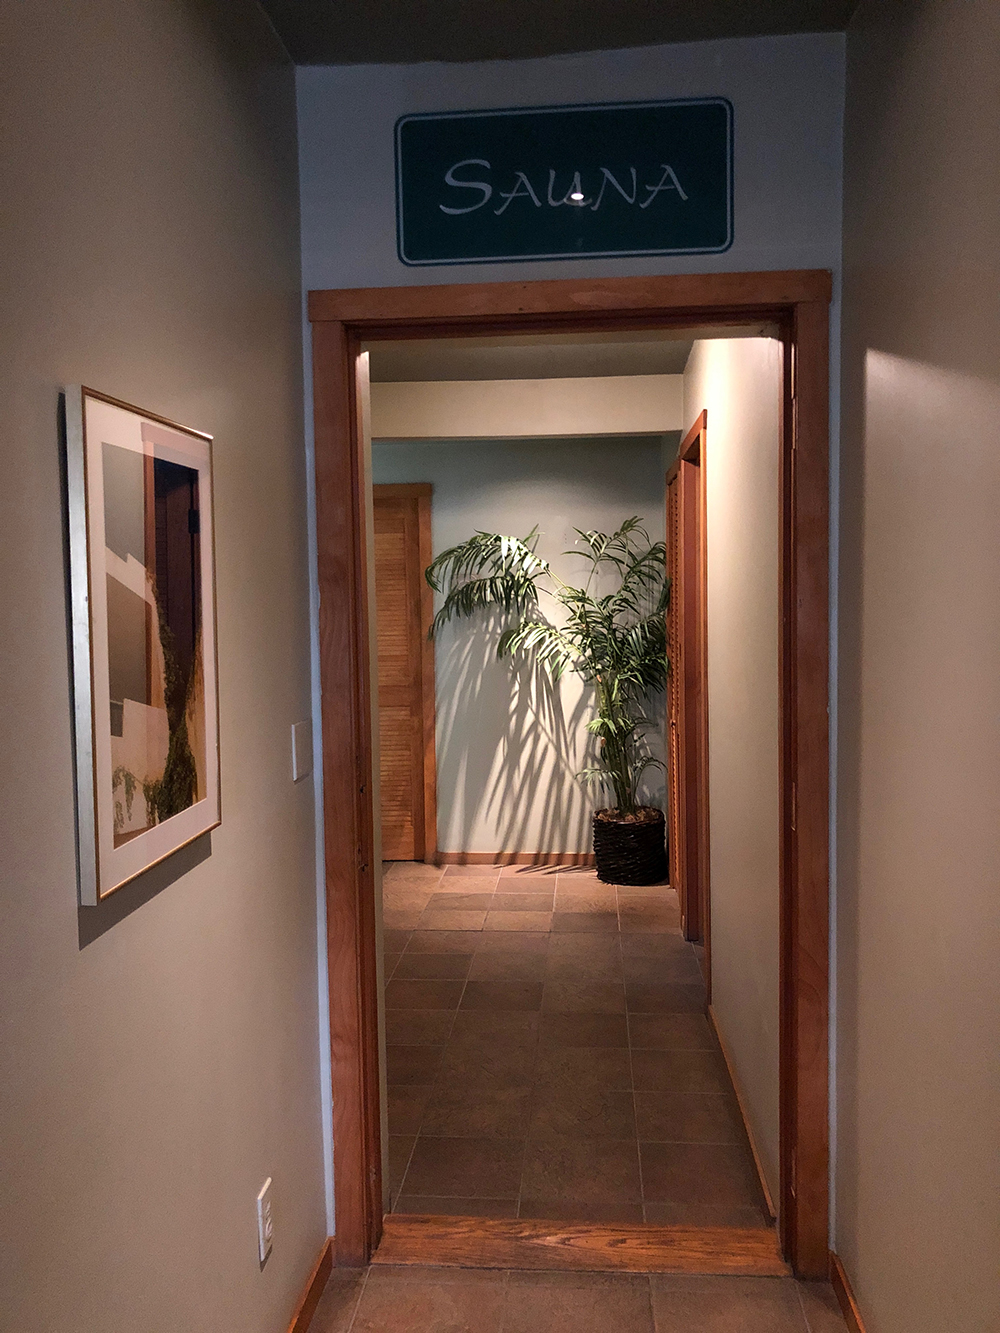 The hallway leading to the dry sauna and treatment rooms.